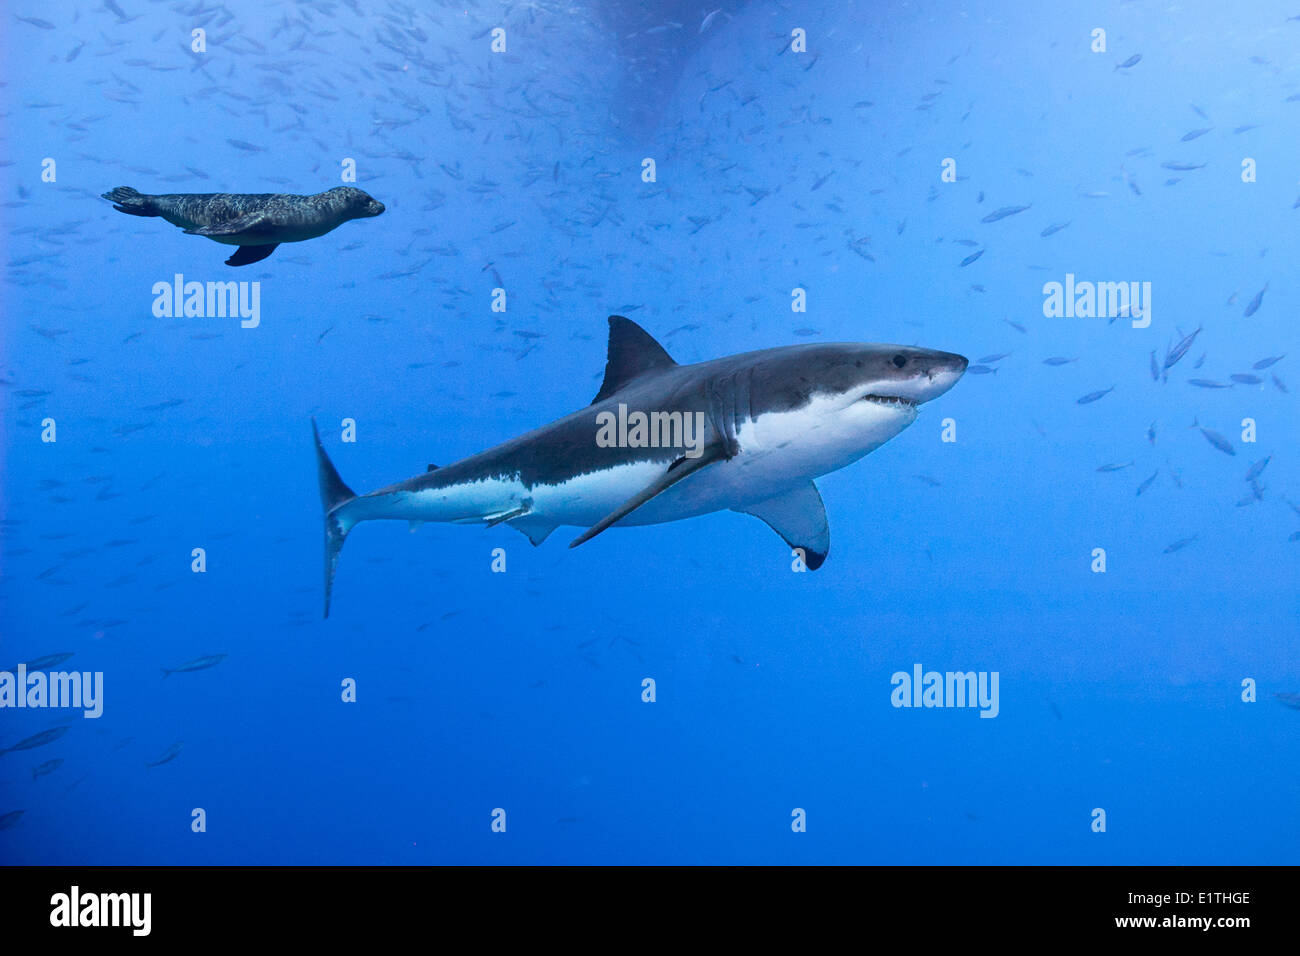 Great white shark (Carcharodon carcharias) being harassed by a juvenile California sea lion (Zalophus californianus) Stock Photo